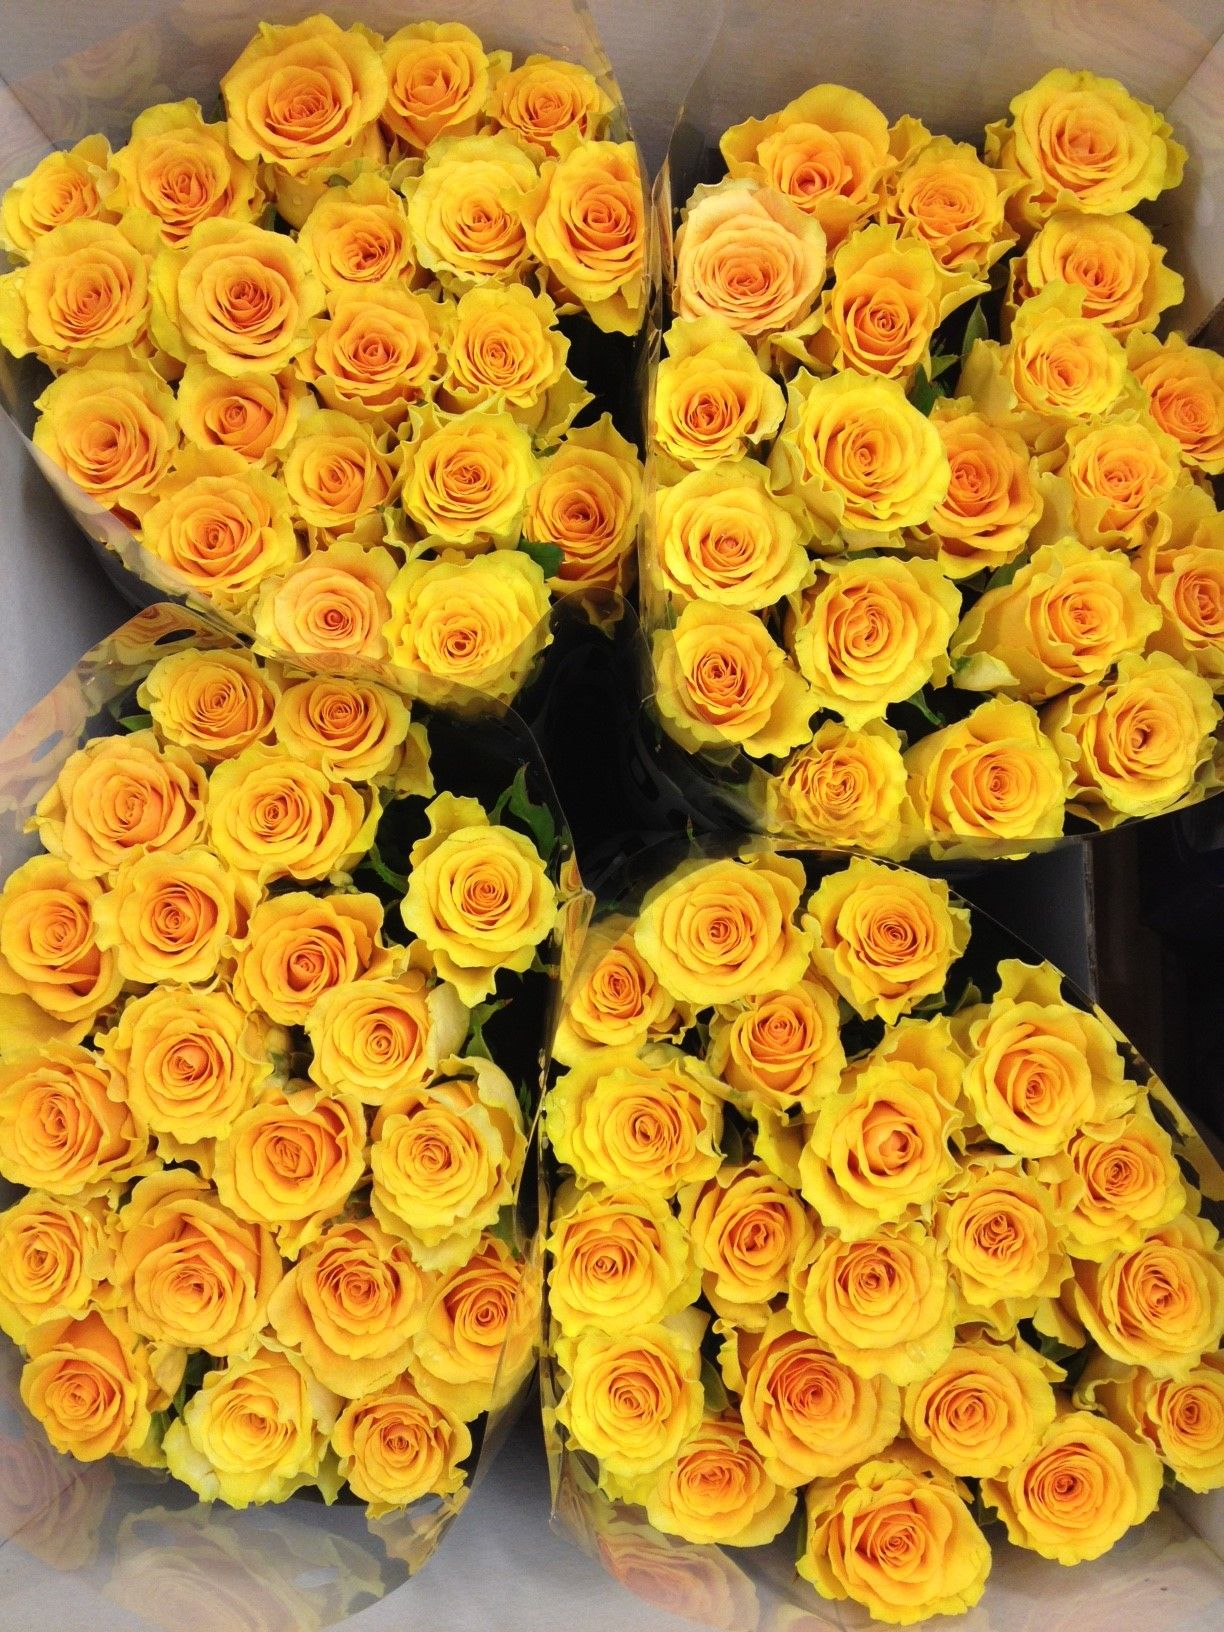 Home bulk roses peach roses - Bucket Of Sphinx Gold Roses Sold In Bunches Of 20 Stems From The Flowermonger The Wholesale Floral Home Delivery Service